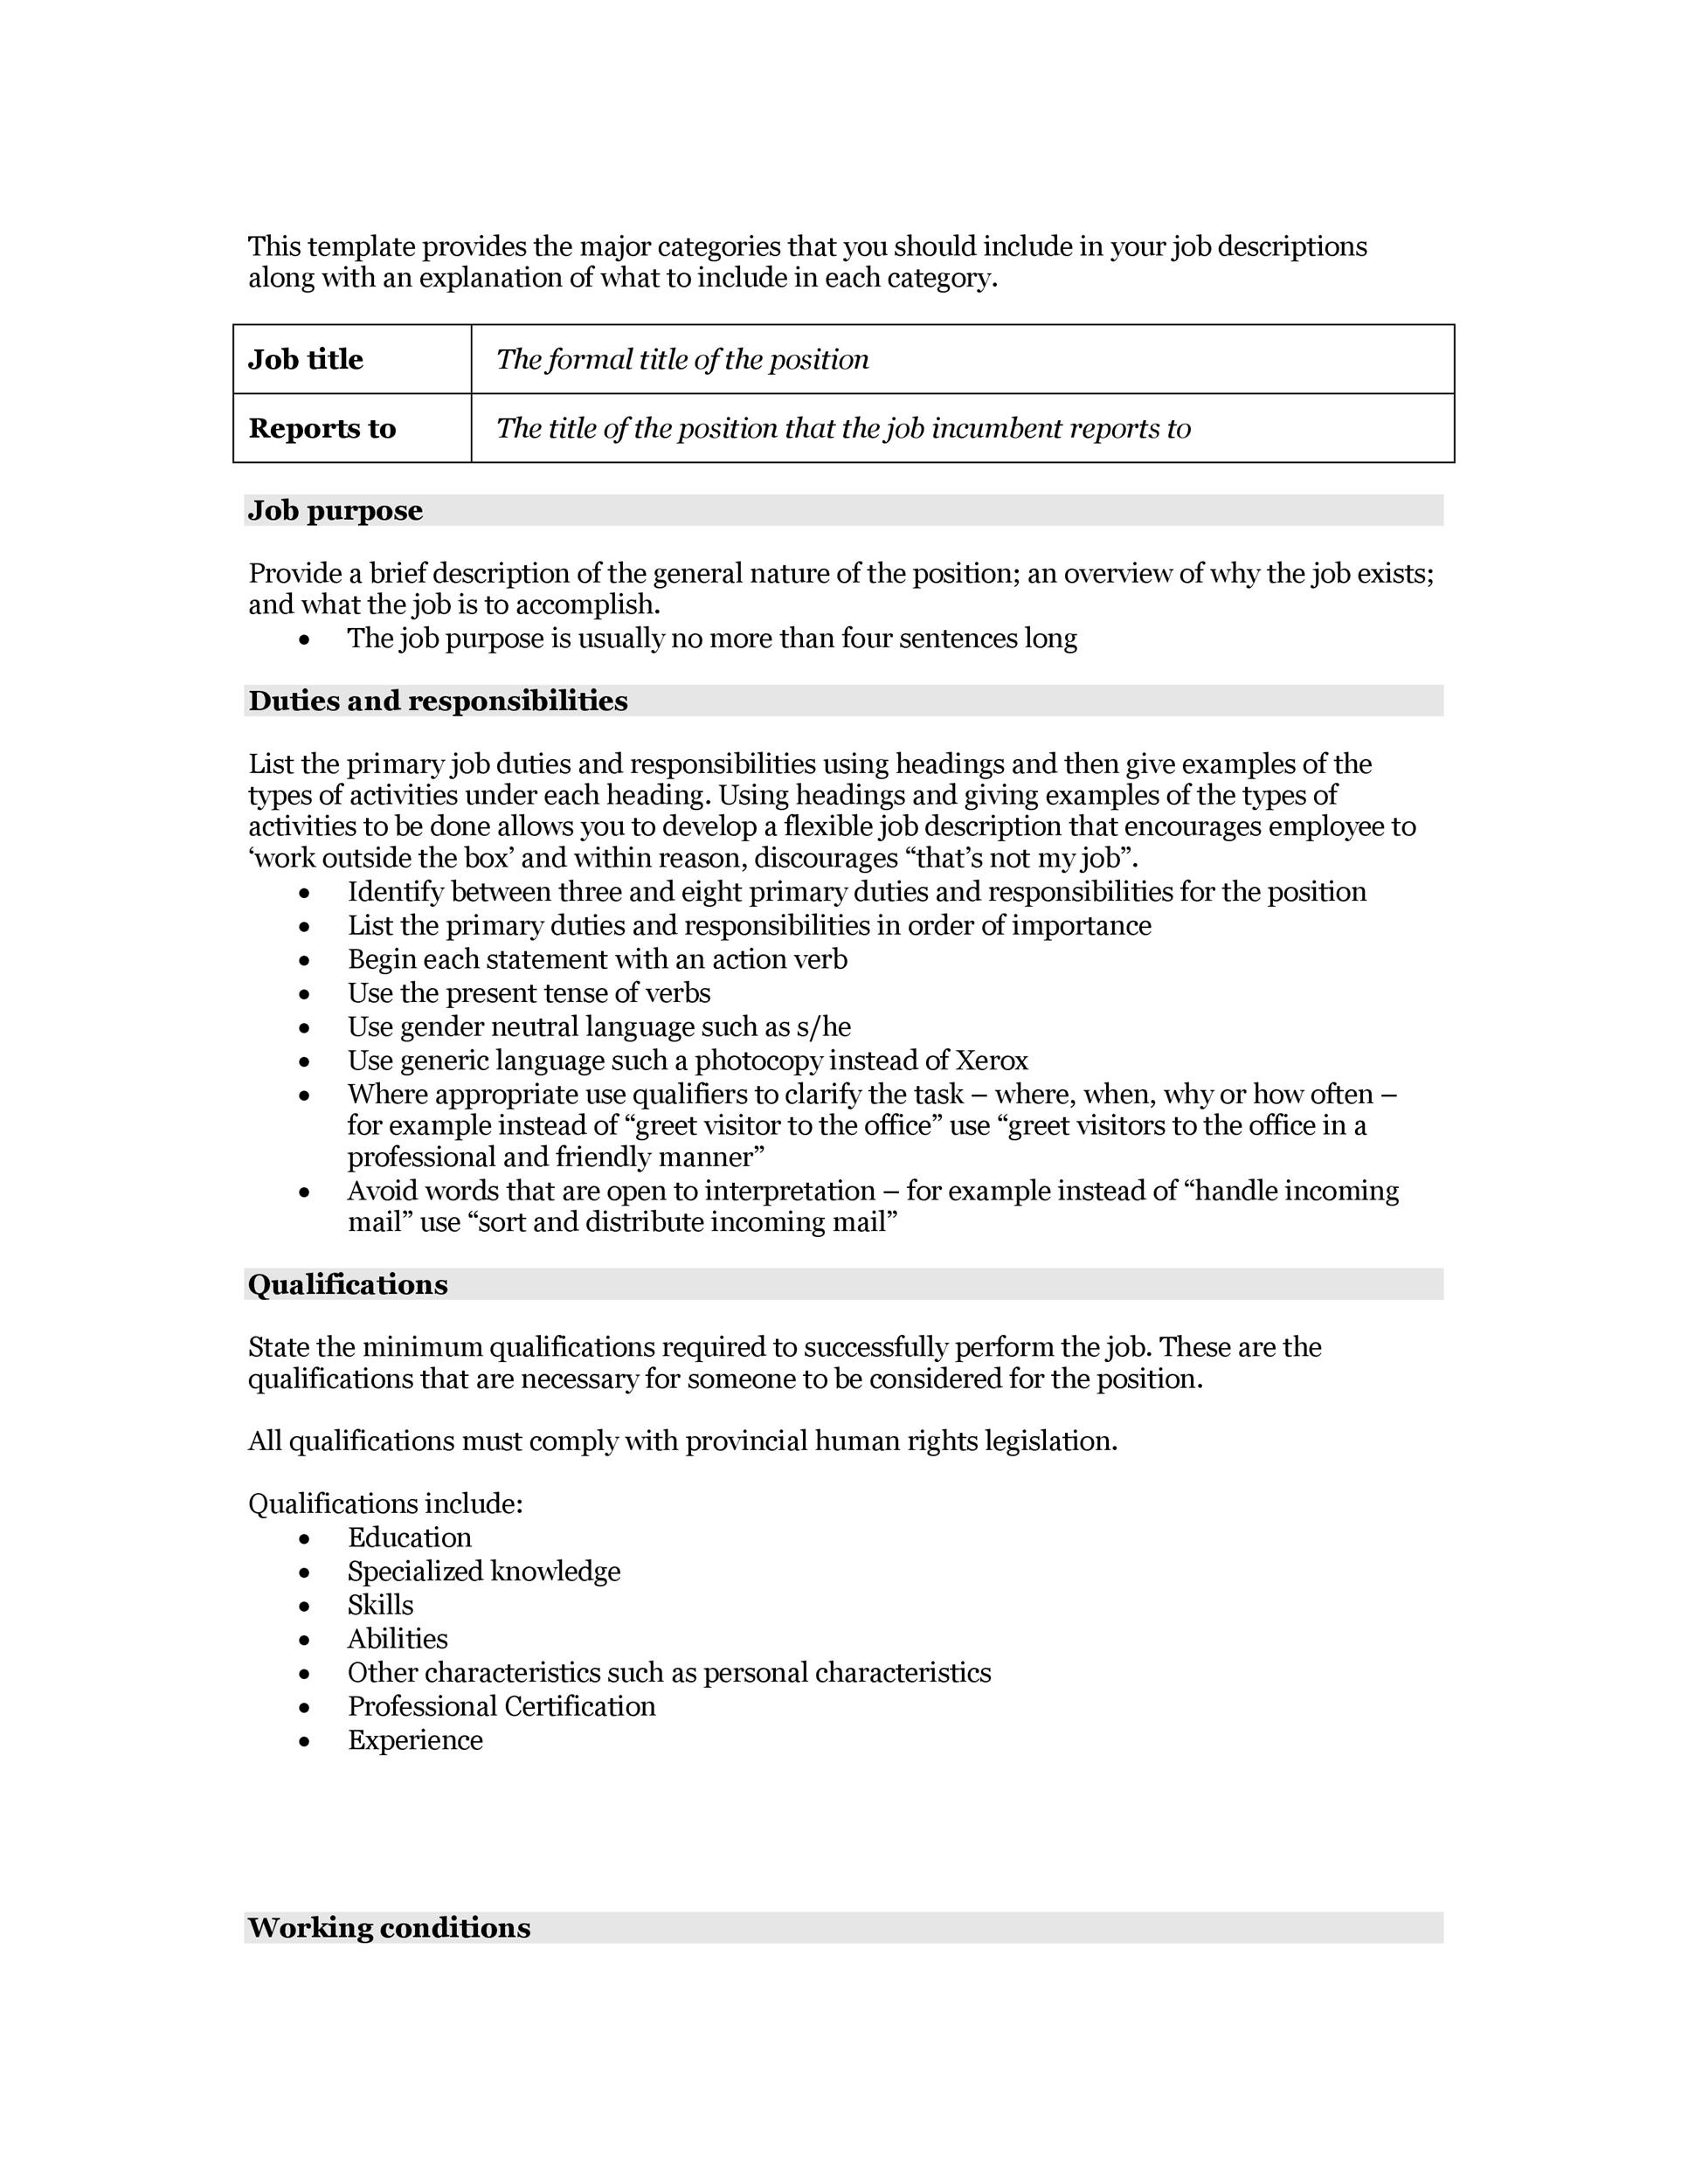 Free Job Description Template 04